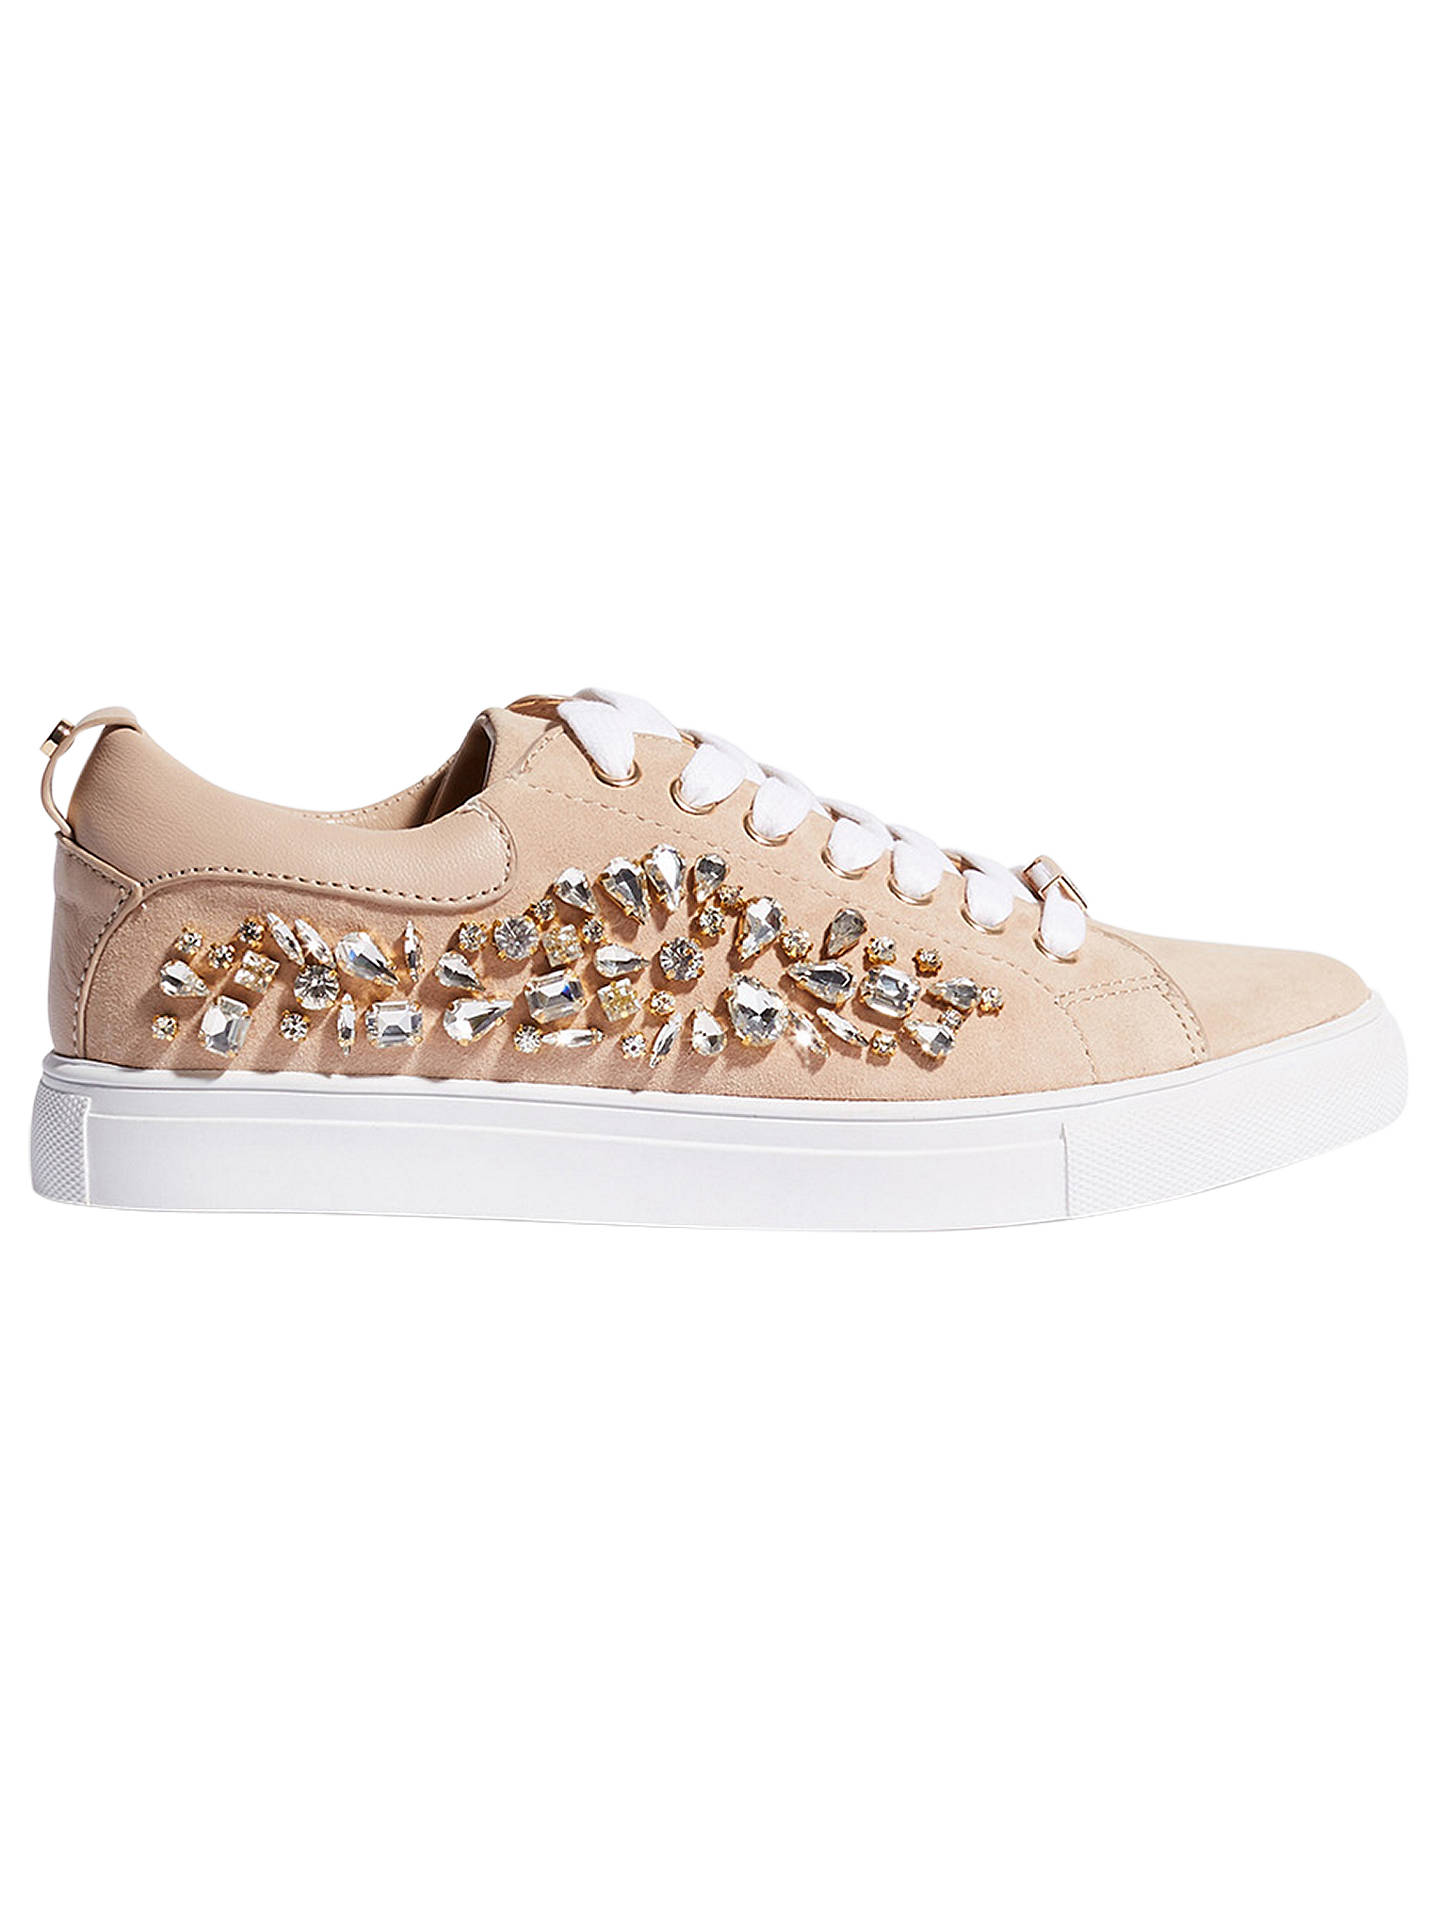 b2c8a6862e429a Buy Karen Millen Jewel Embellished Lace Up Trainers